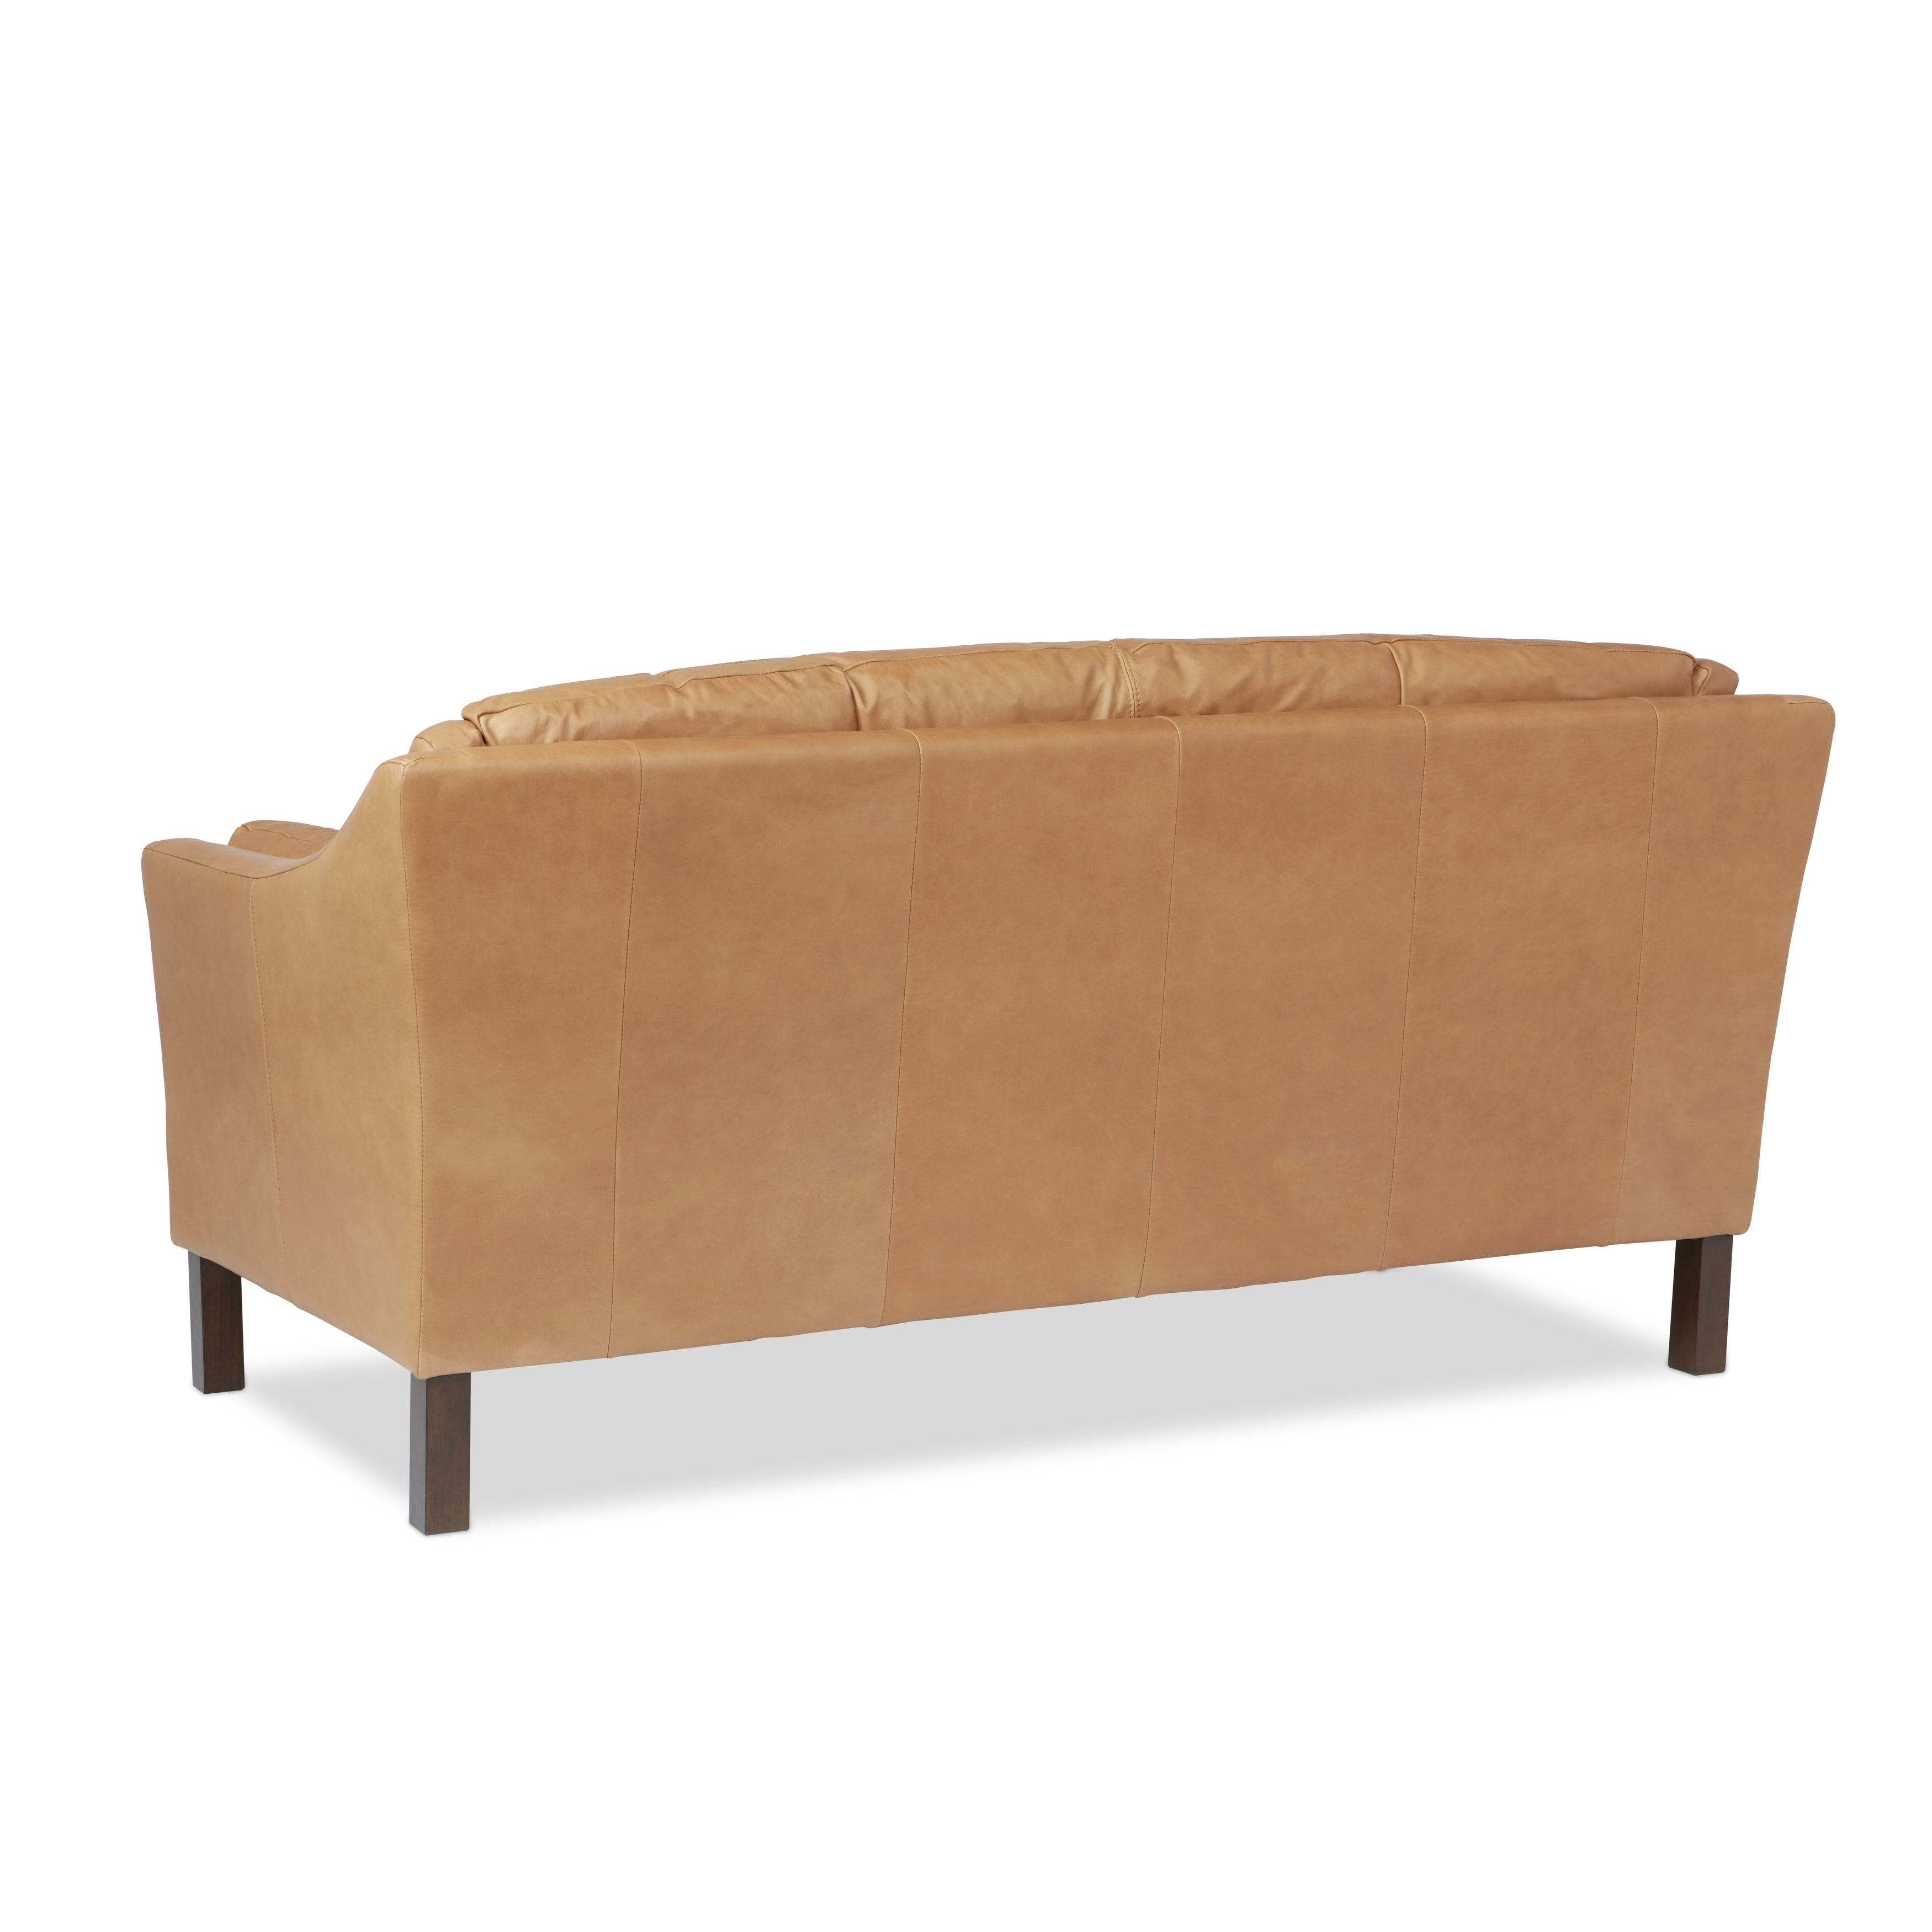 Reginald Charme Russet Leather Sofa Free Shipping Today  ~ Single Cushion Sofa Couch